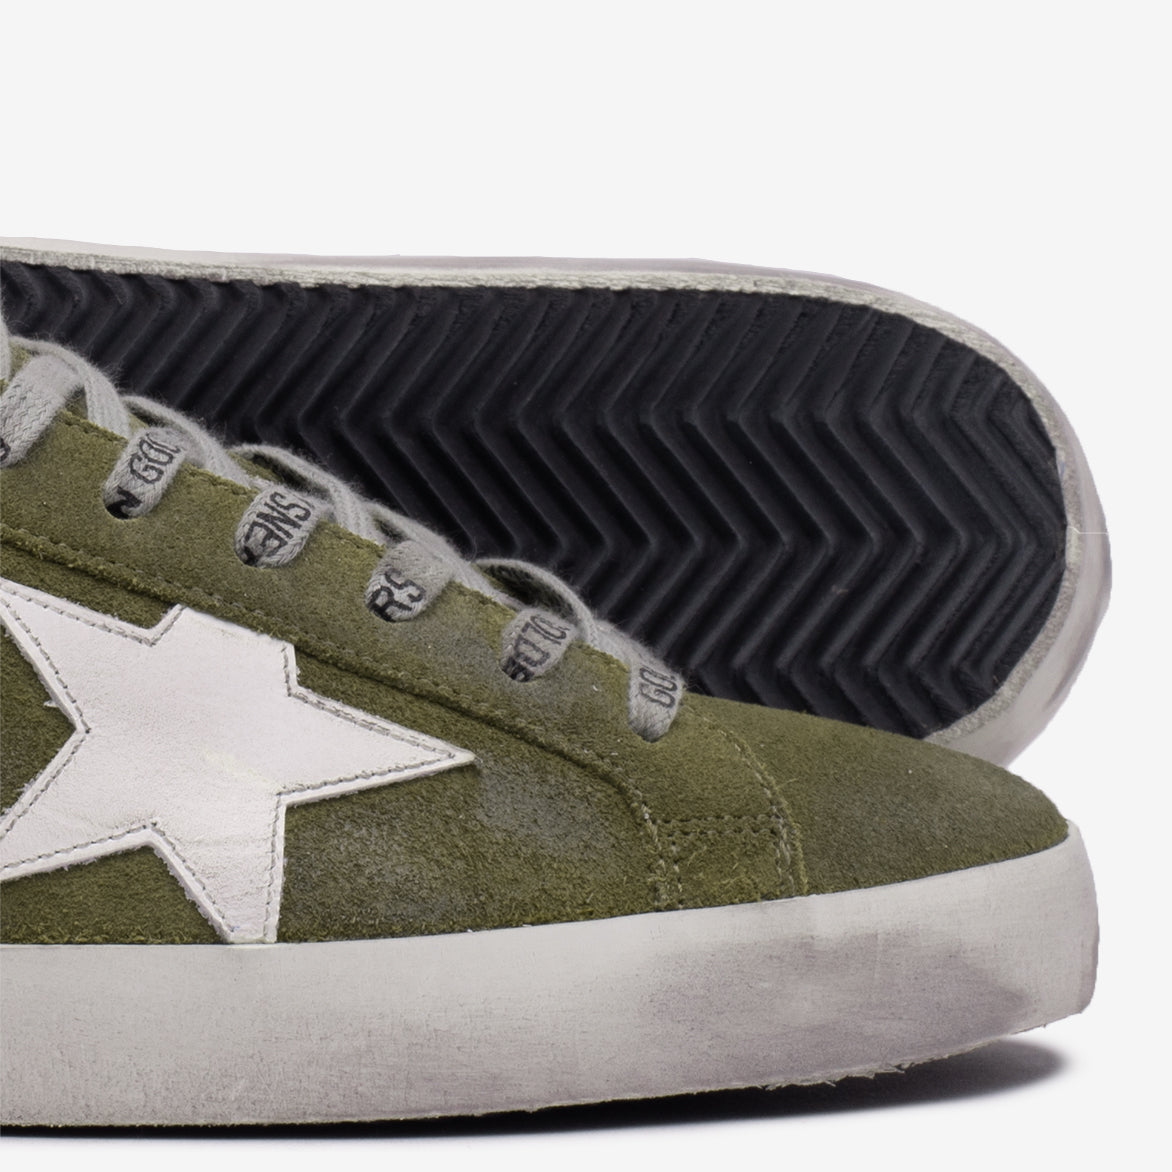 SUPERSTAR CLASSIC SUEDE - WOOD GREEN / WHITE / BLUE